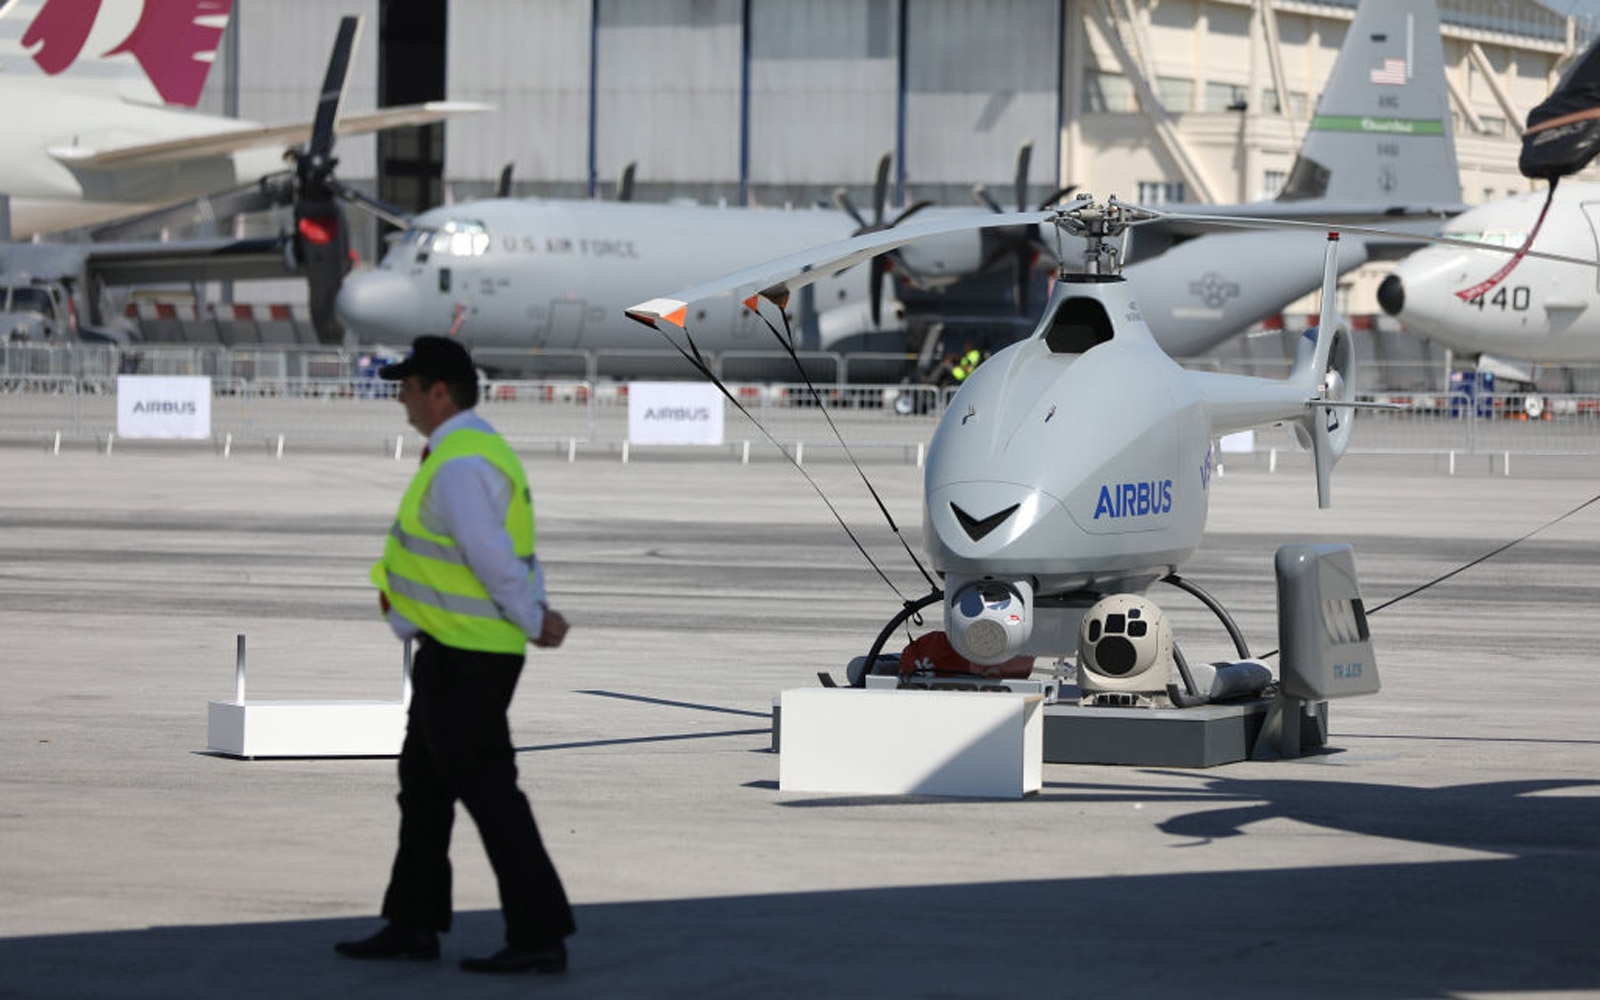 An Airbus SE unmanned aerial vehicle (UAV) stands on the tarmac ahead of the 53rd International Paris Air Show at Le Bourget, in Paris, France, on Sunday, June 18, 2017. The show is the world's largest aviation and space industry exhibition and runs from